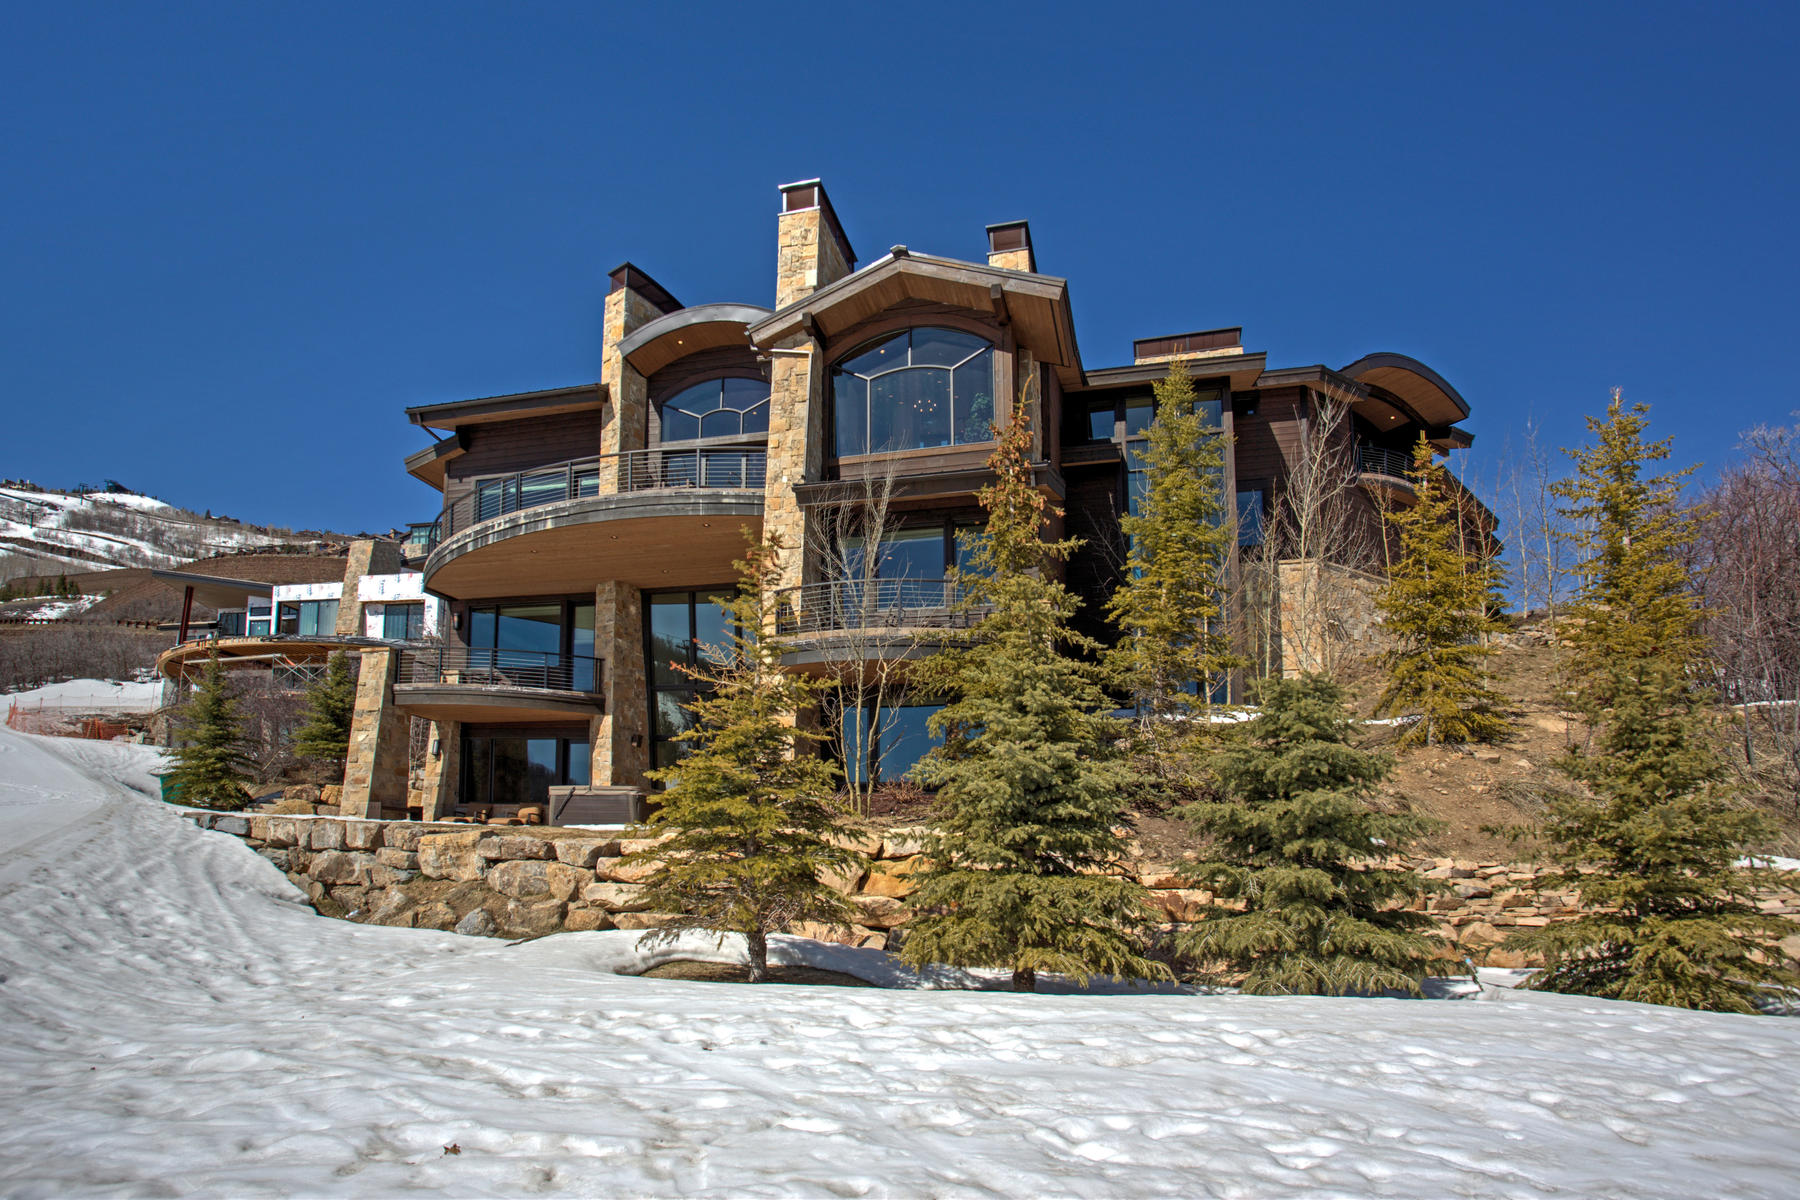 Einfamilienhaus für Verkauf beim Spectacular Turnkey Custom Home with Stunning Views protected by Open Space 2997 Deer Crest Estates Dr Park City, Utah, 84060 Vereinigte Staaten